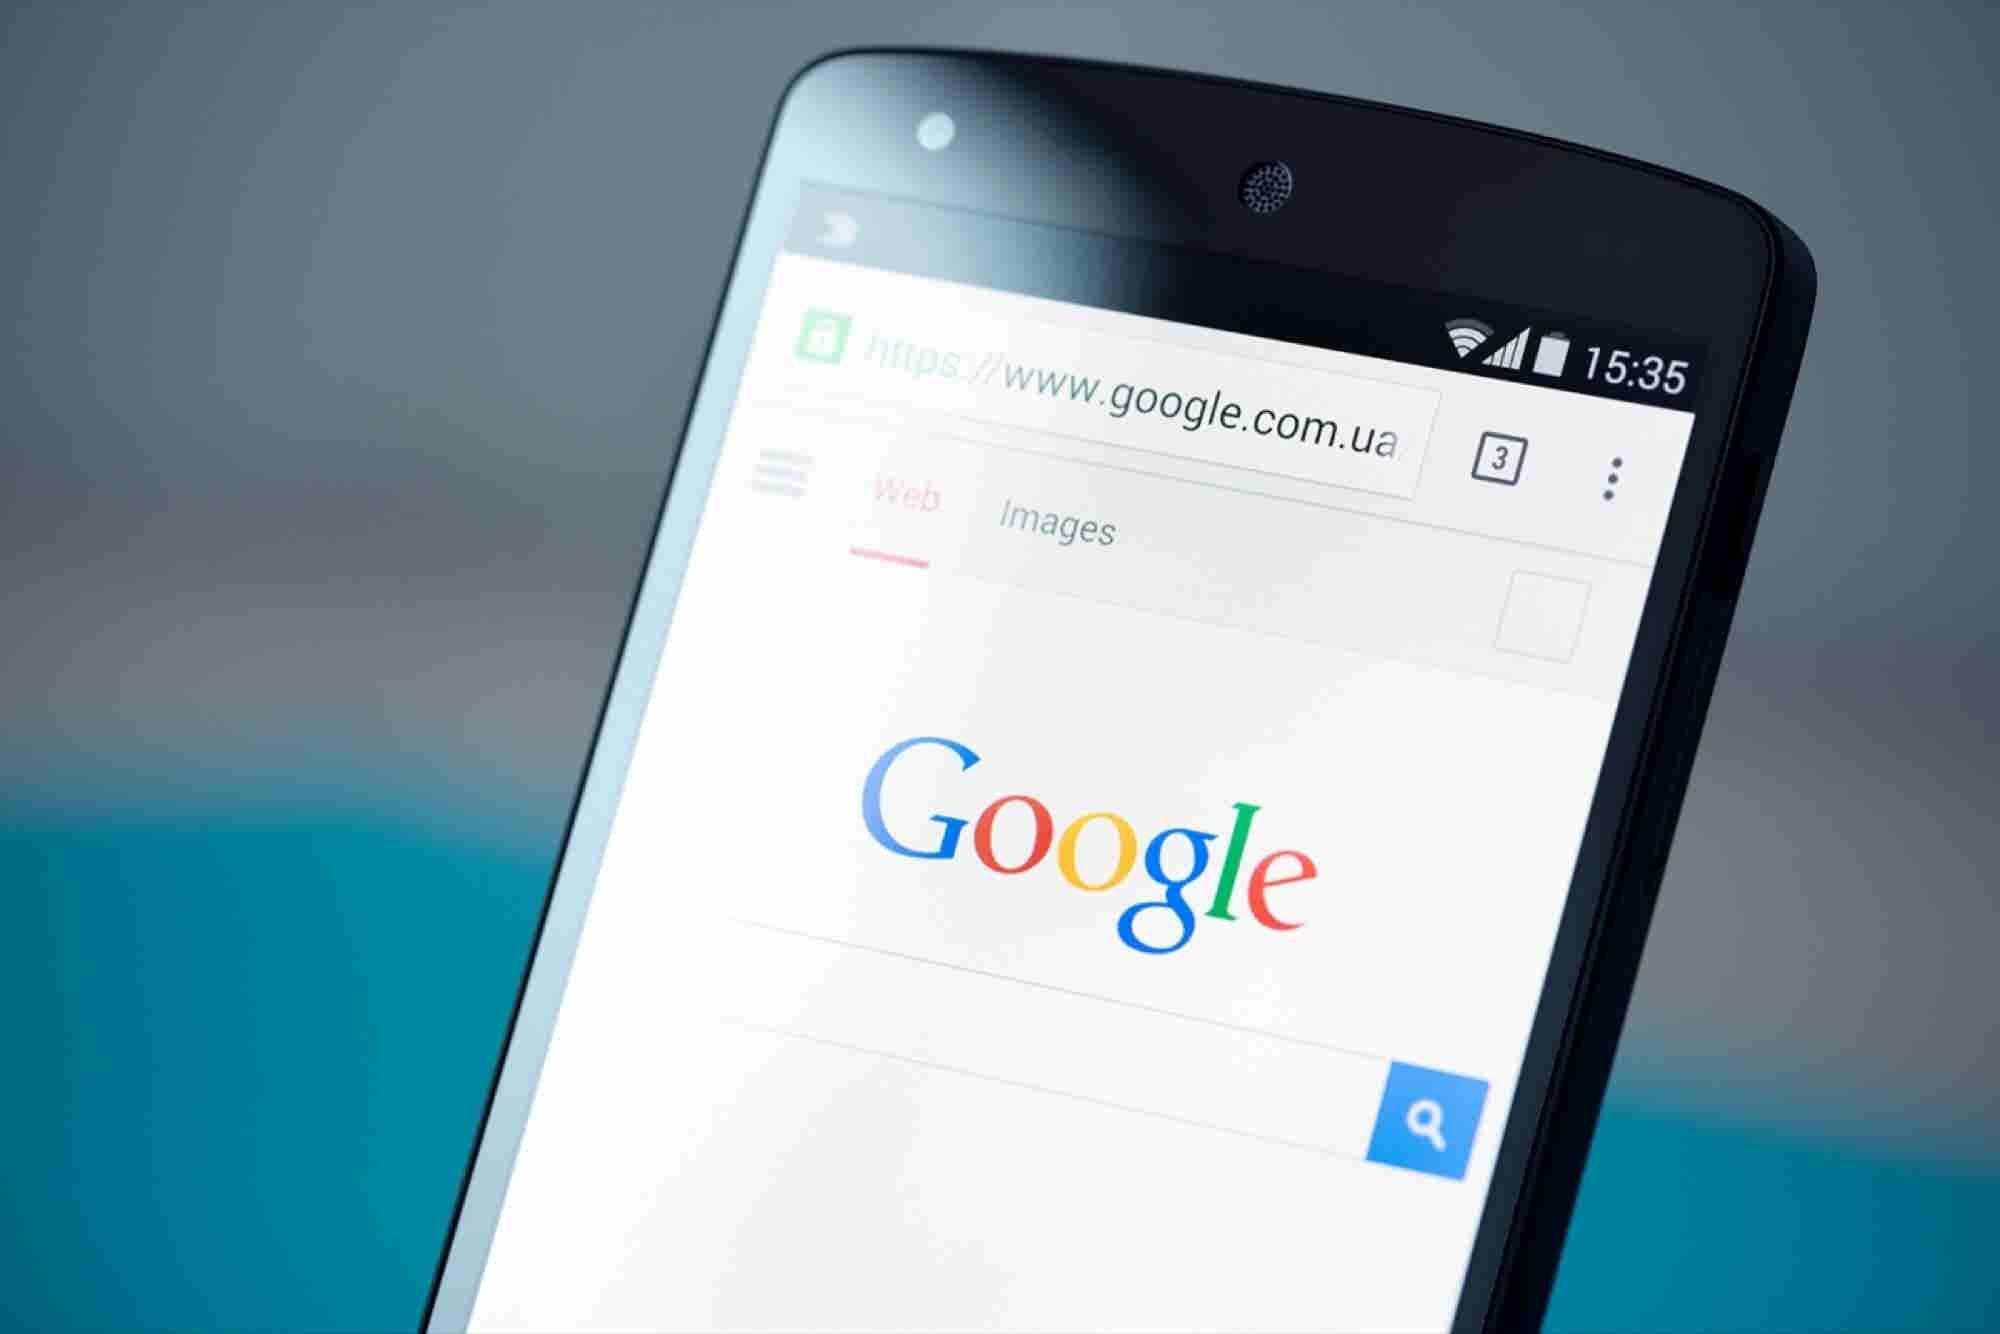 Report: Google Is Building a 'Smart' Mobile-Messaging App to Rival Facebook Messenger